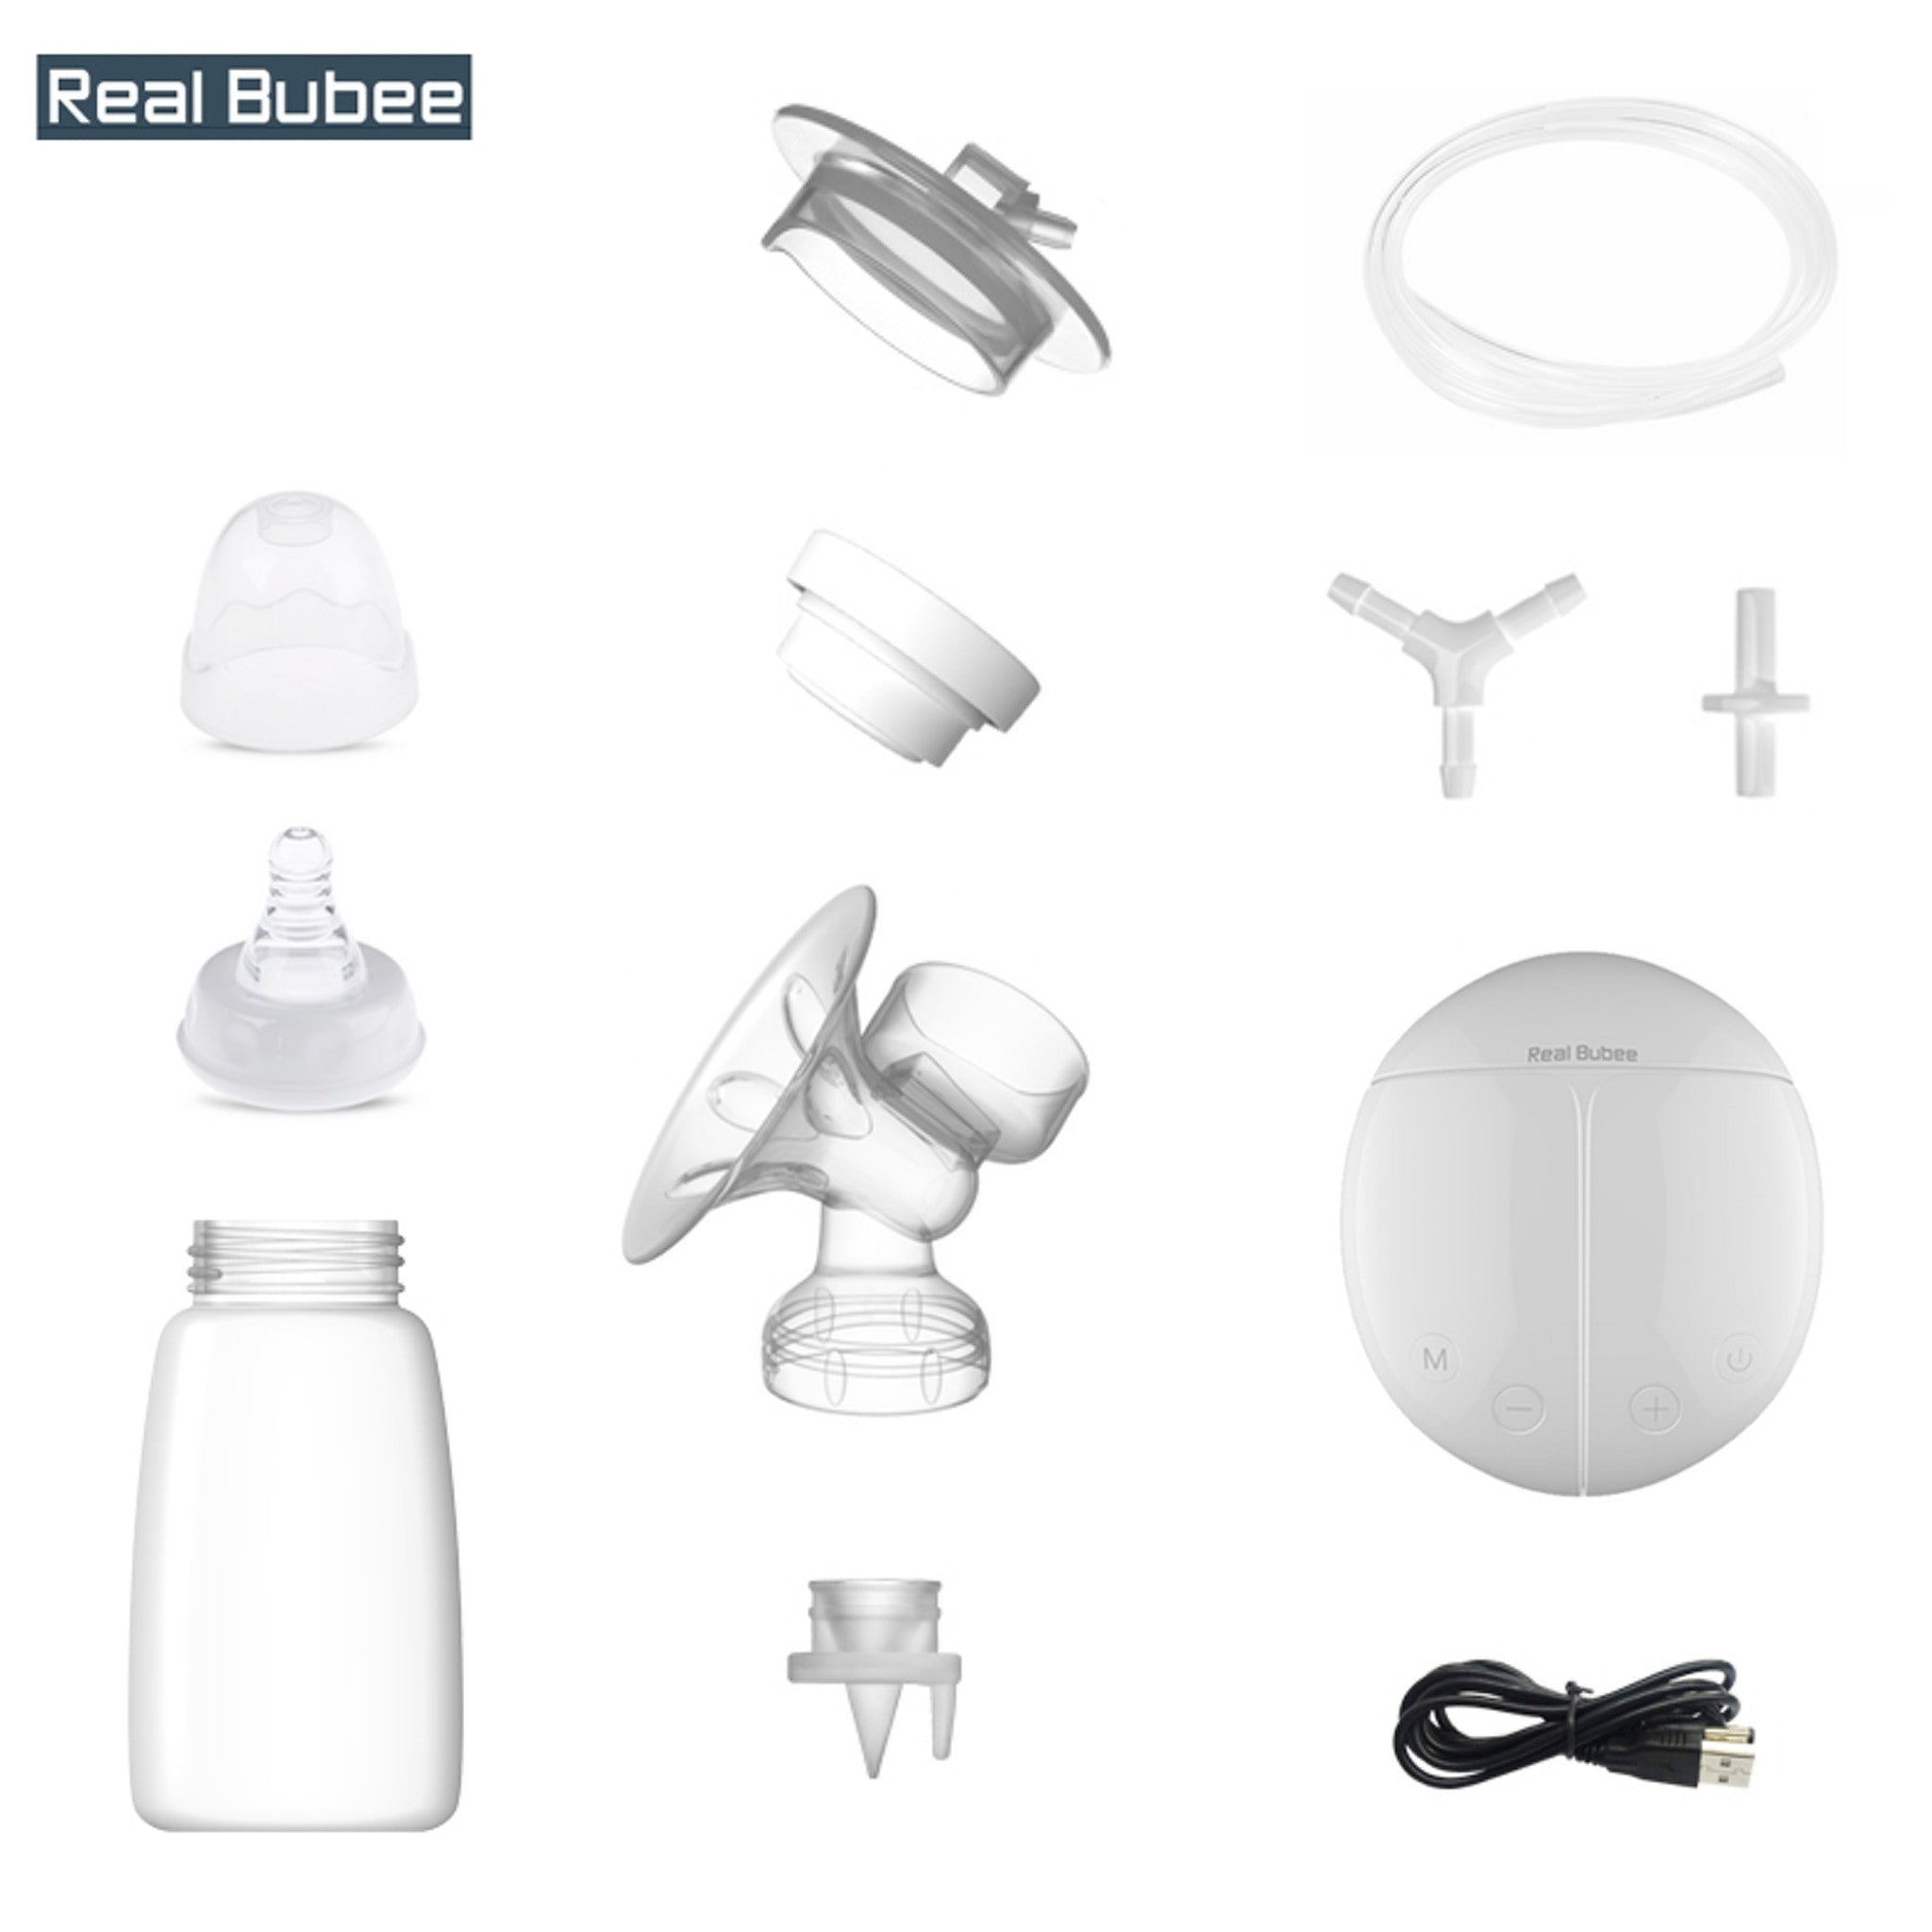 real bubee intelligent pump [spare parts]